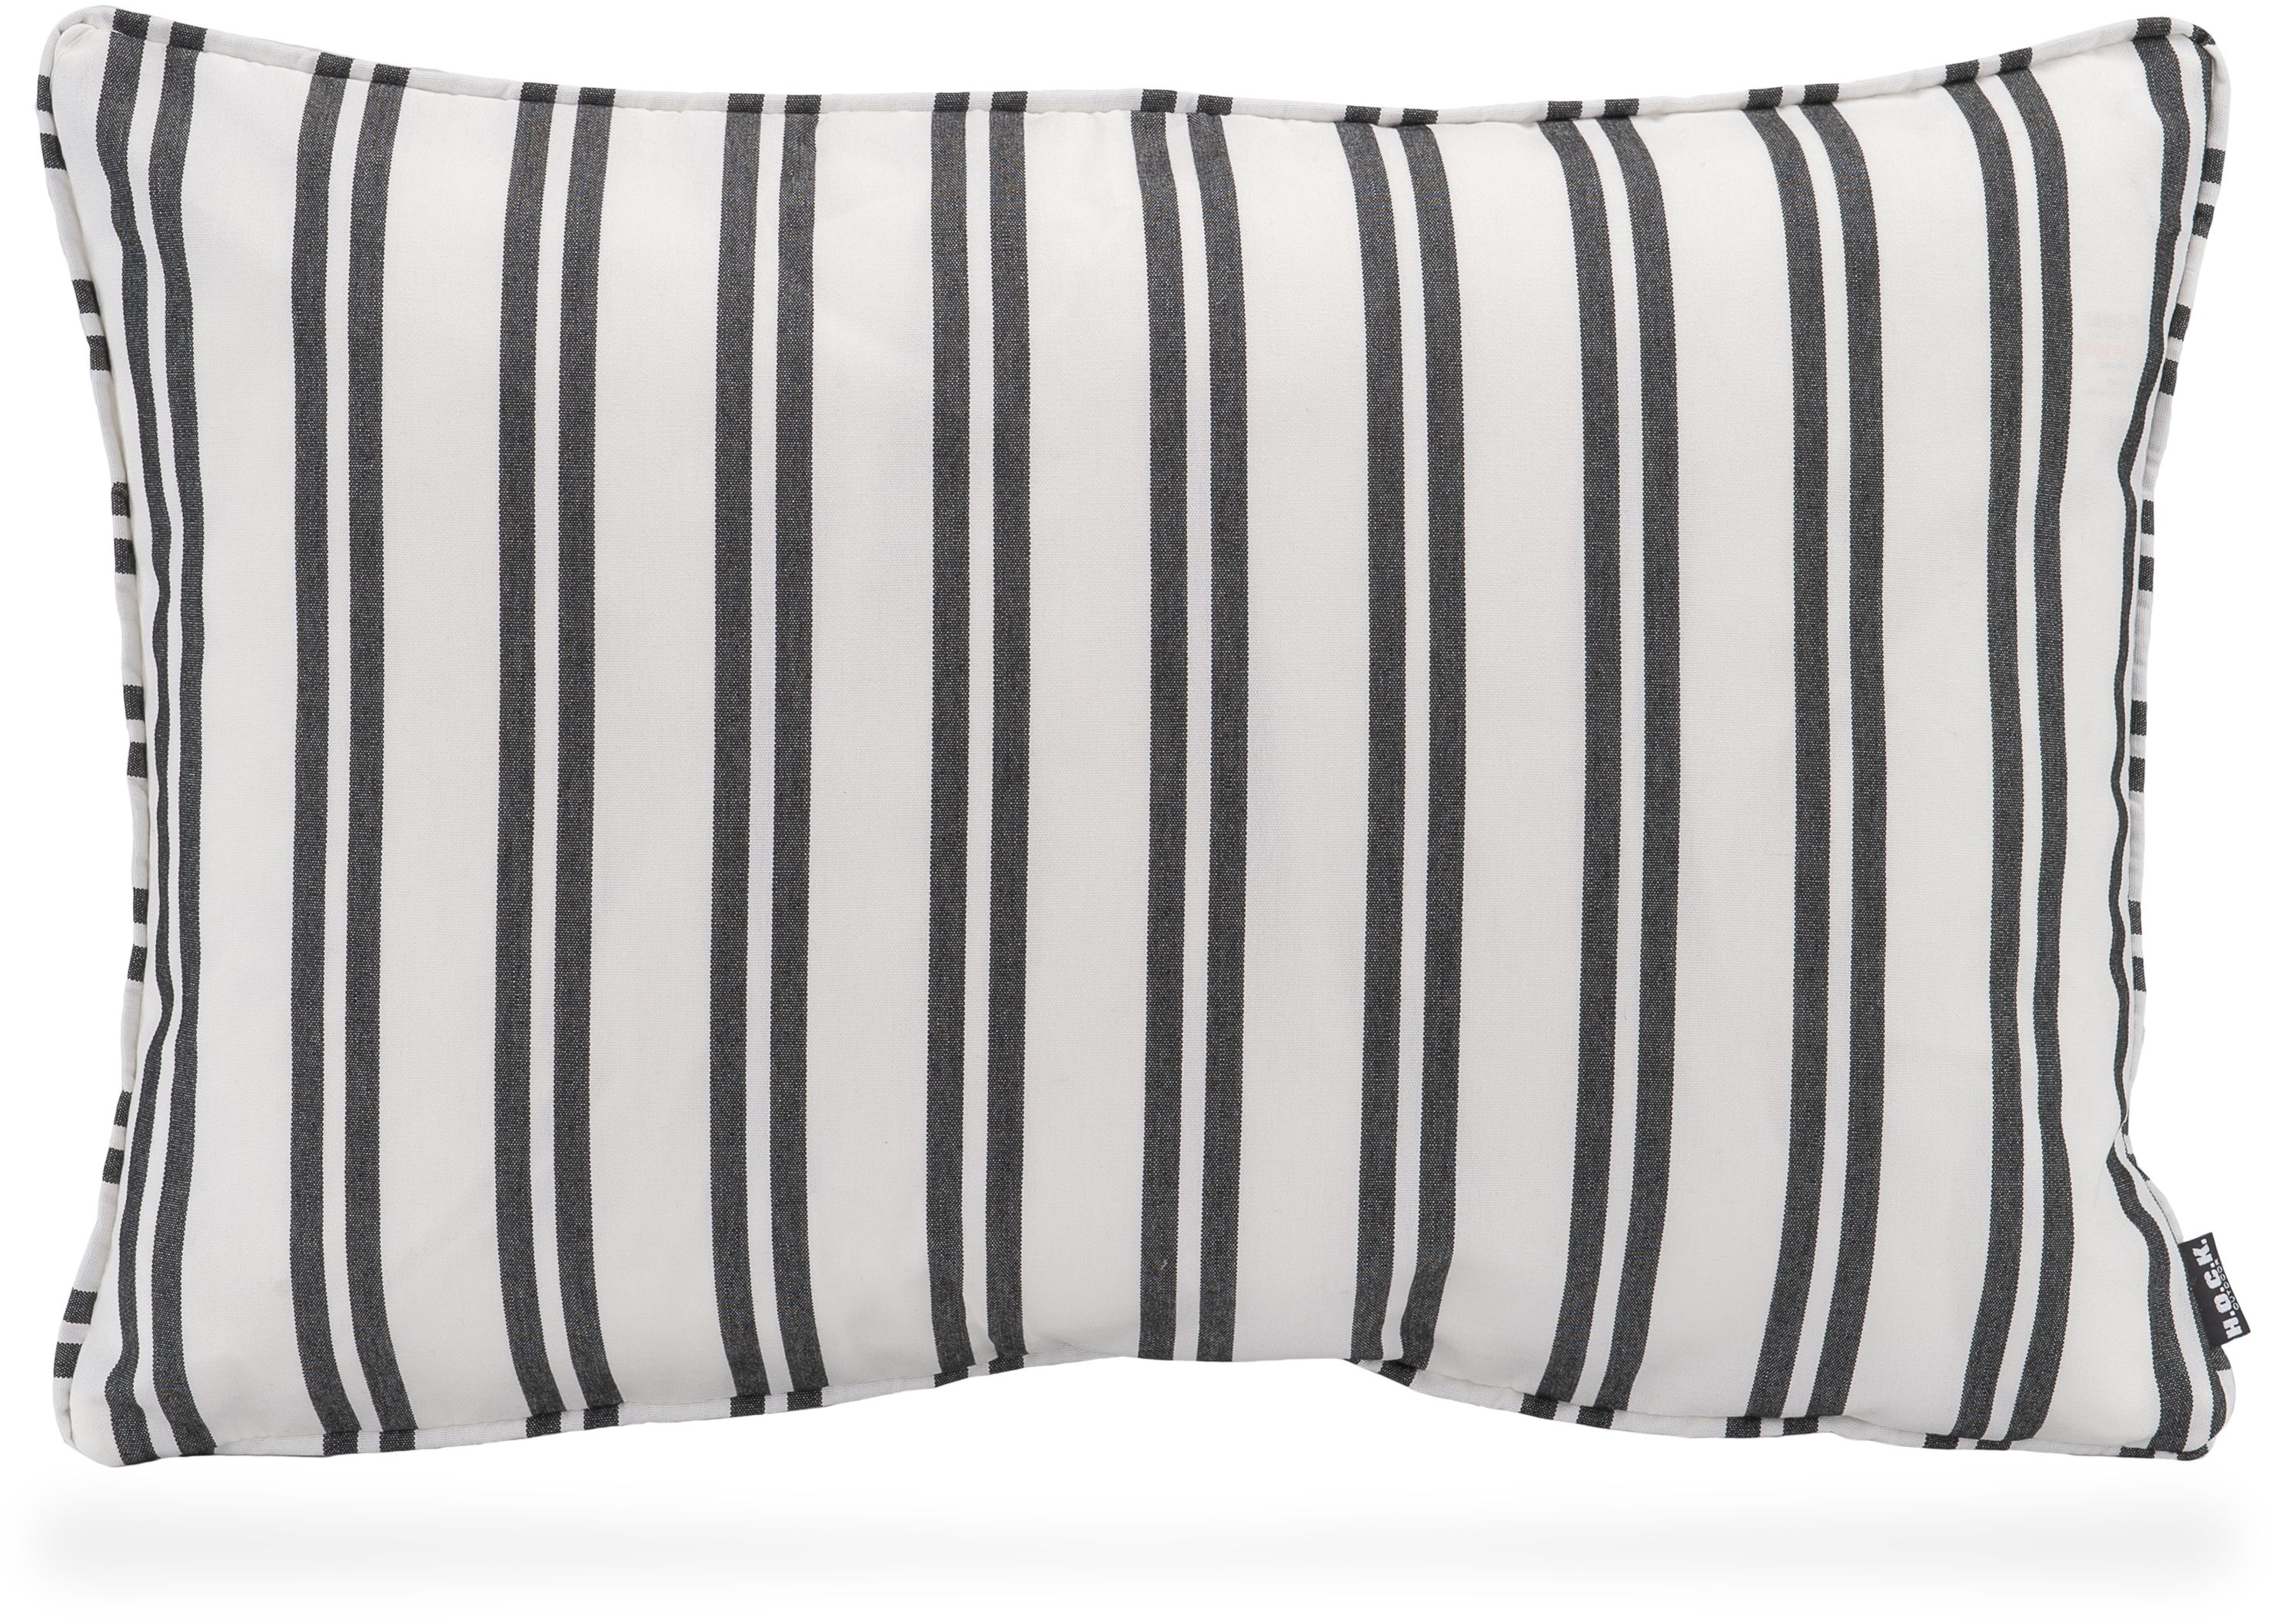 New England Outdoor Kissen 60x40 Whithe Stripes Kissen Schone